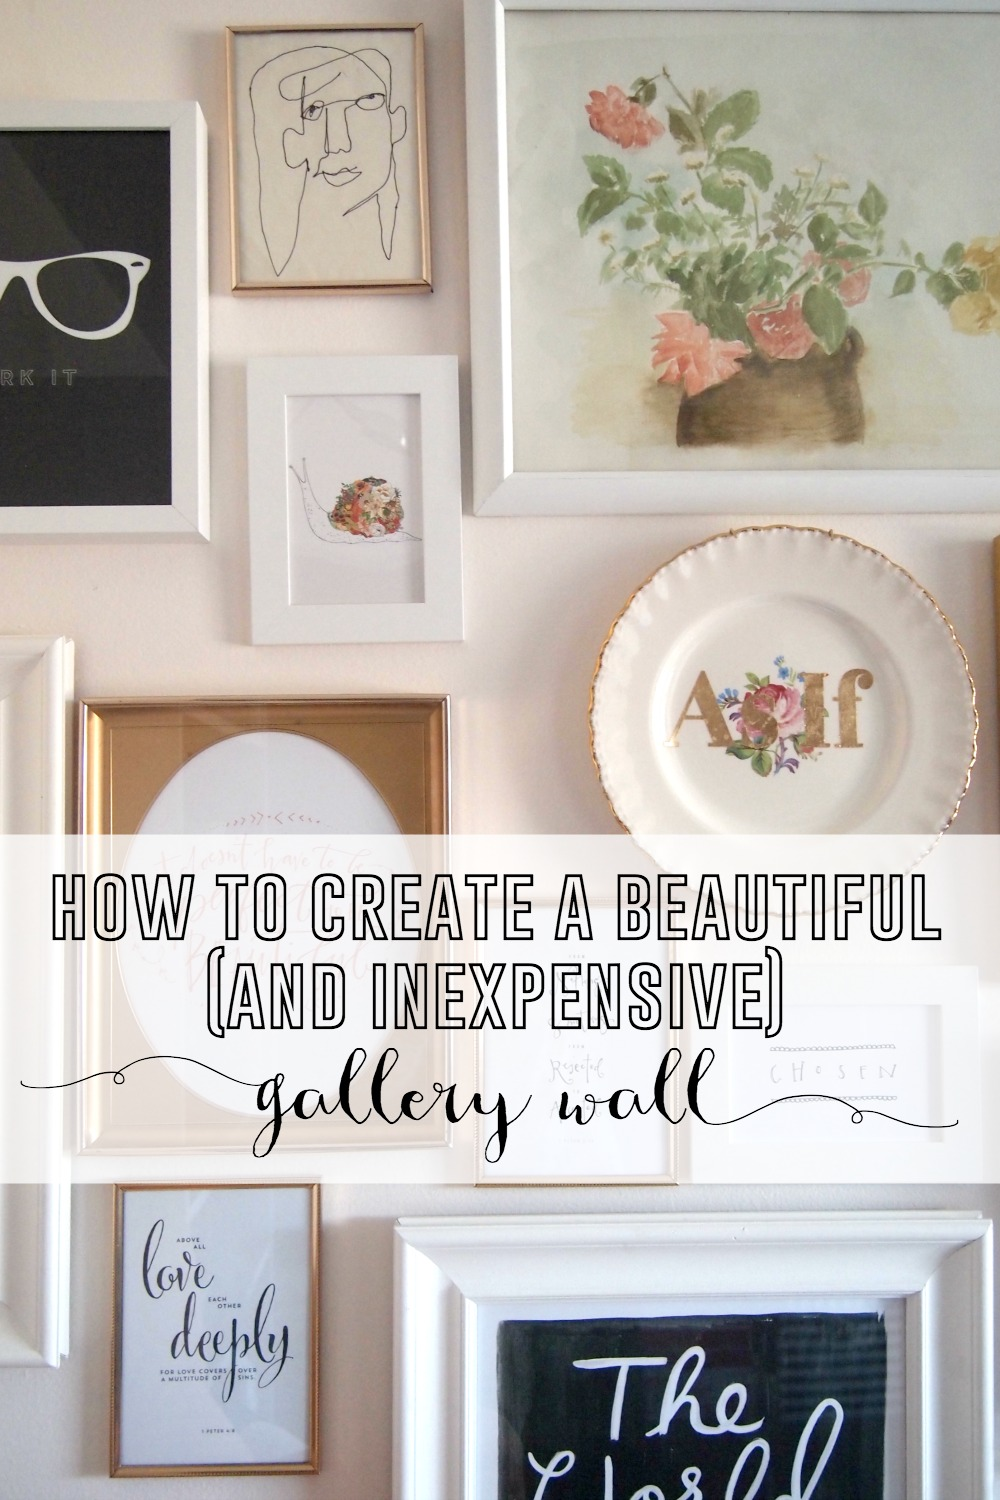 Gallery wall create one inexpensively How to Create a Beautiful and Inexpensive Gallery Wall